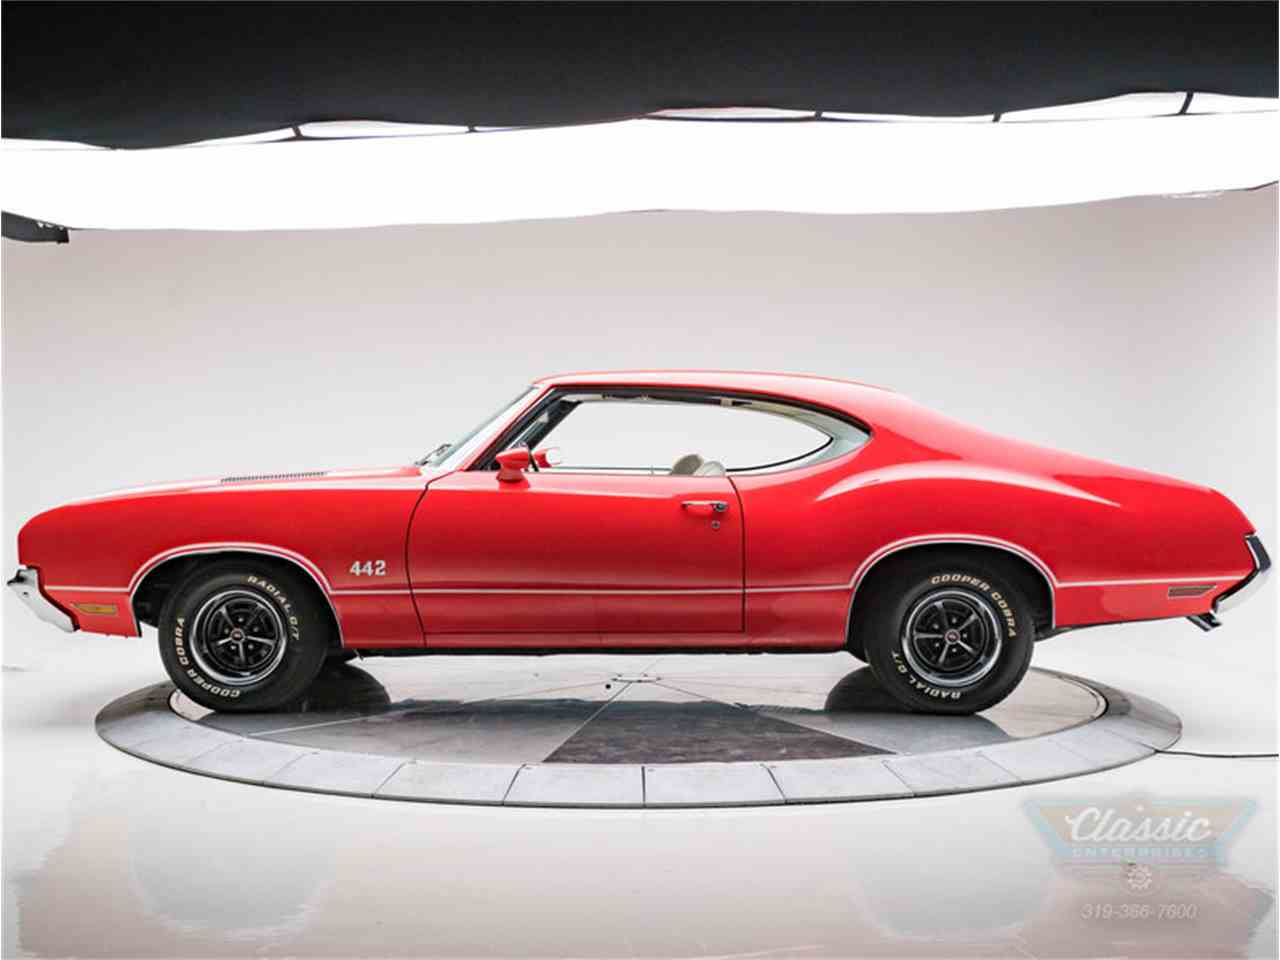 Large Picture of 1972 Oldsmobile Cutlass located in Cedar Rapids Iowa - $28,950.00 Offered by Classic Enterprises - HIAM